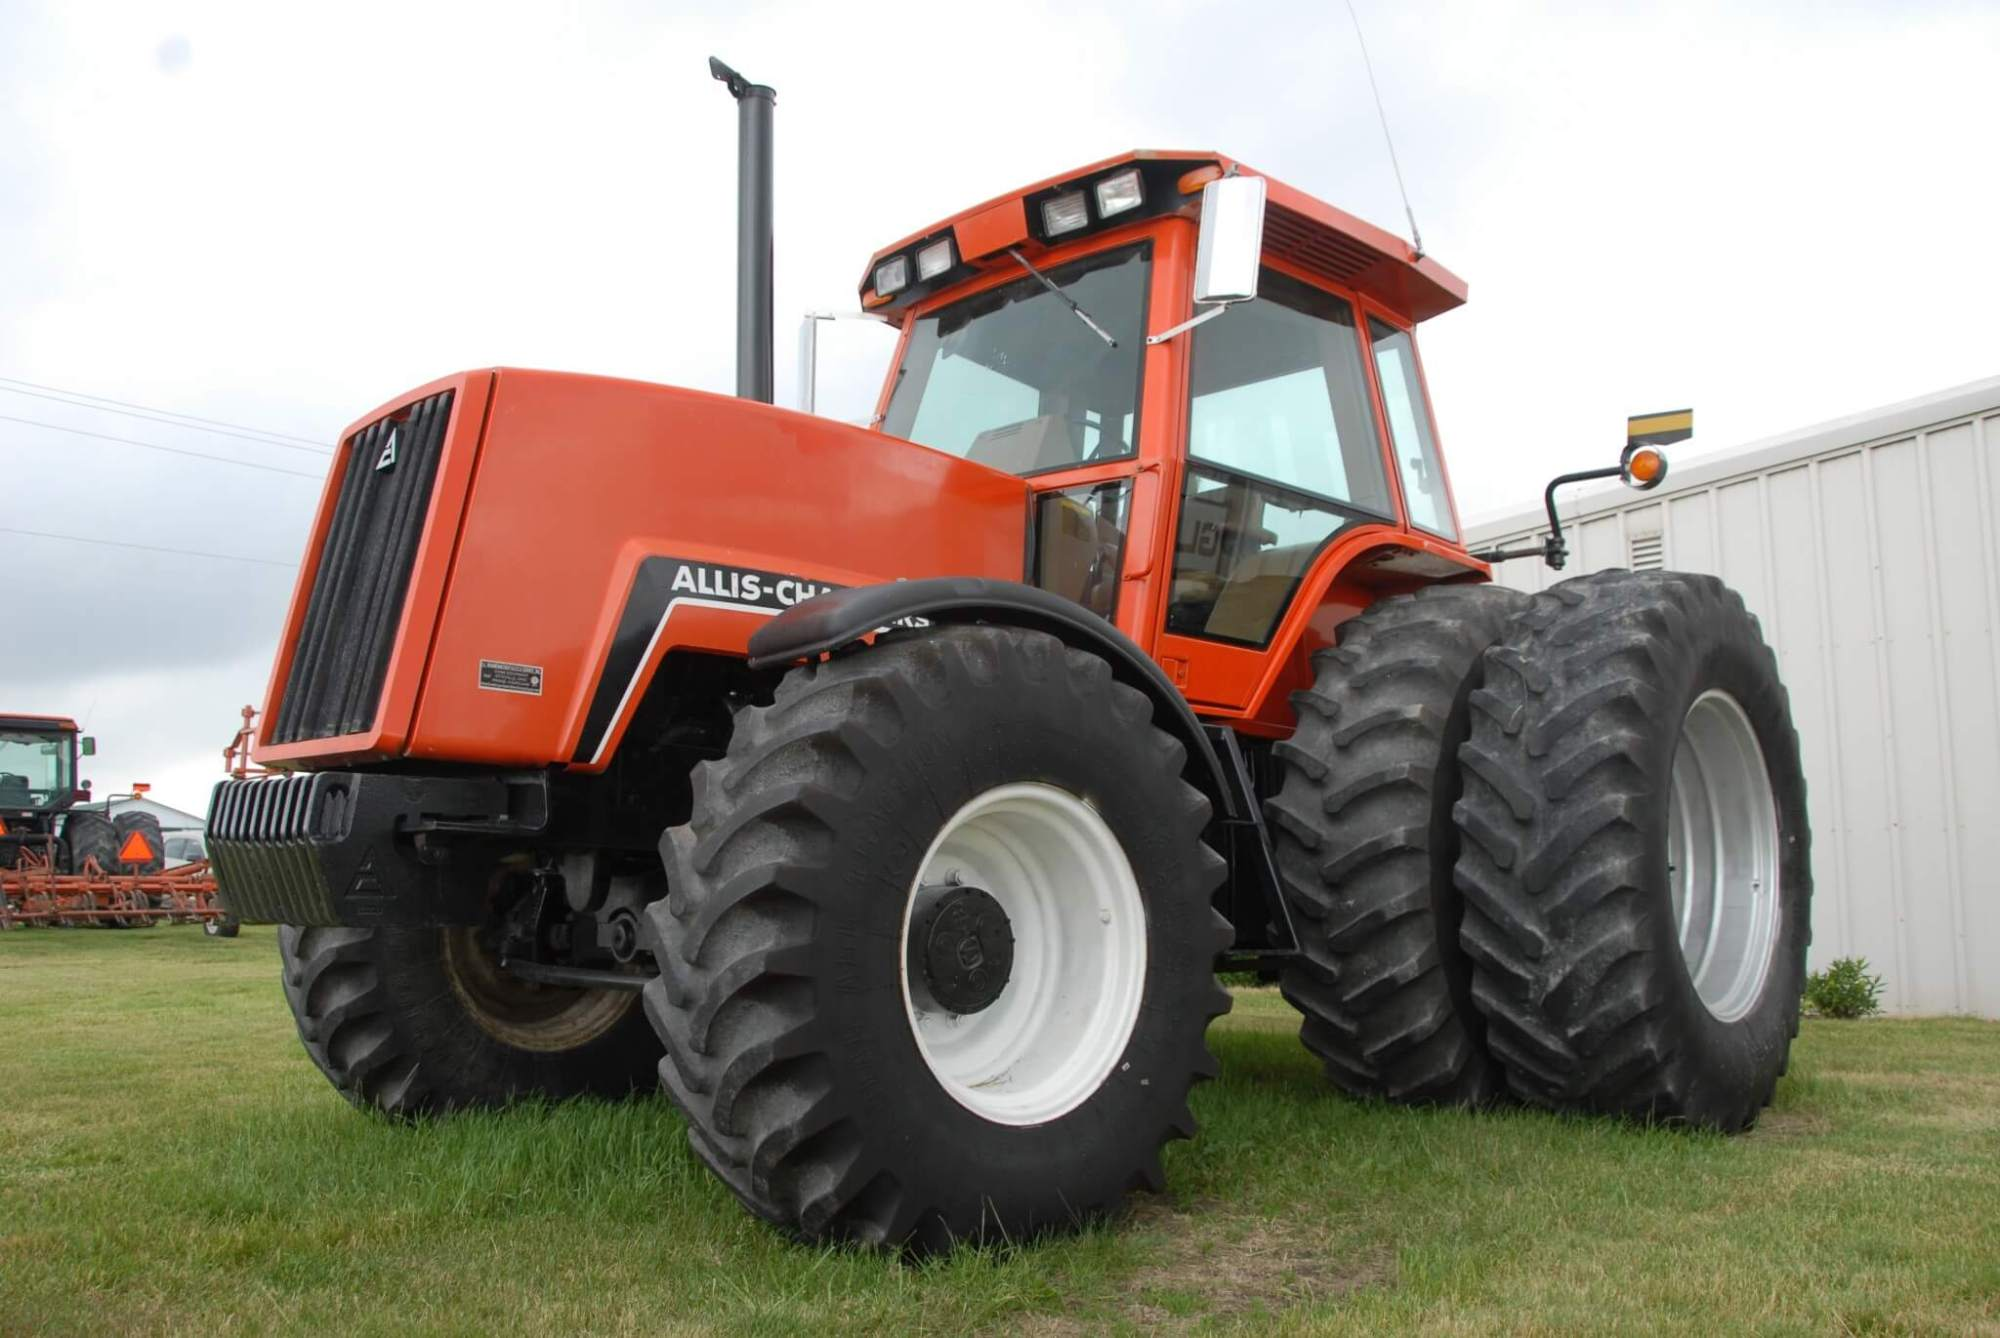 hight resolution of allis chalmers 8070 farm tractor allis chalmers farm tractors allis chalmers farm tractors tractorhd mobi